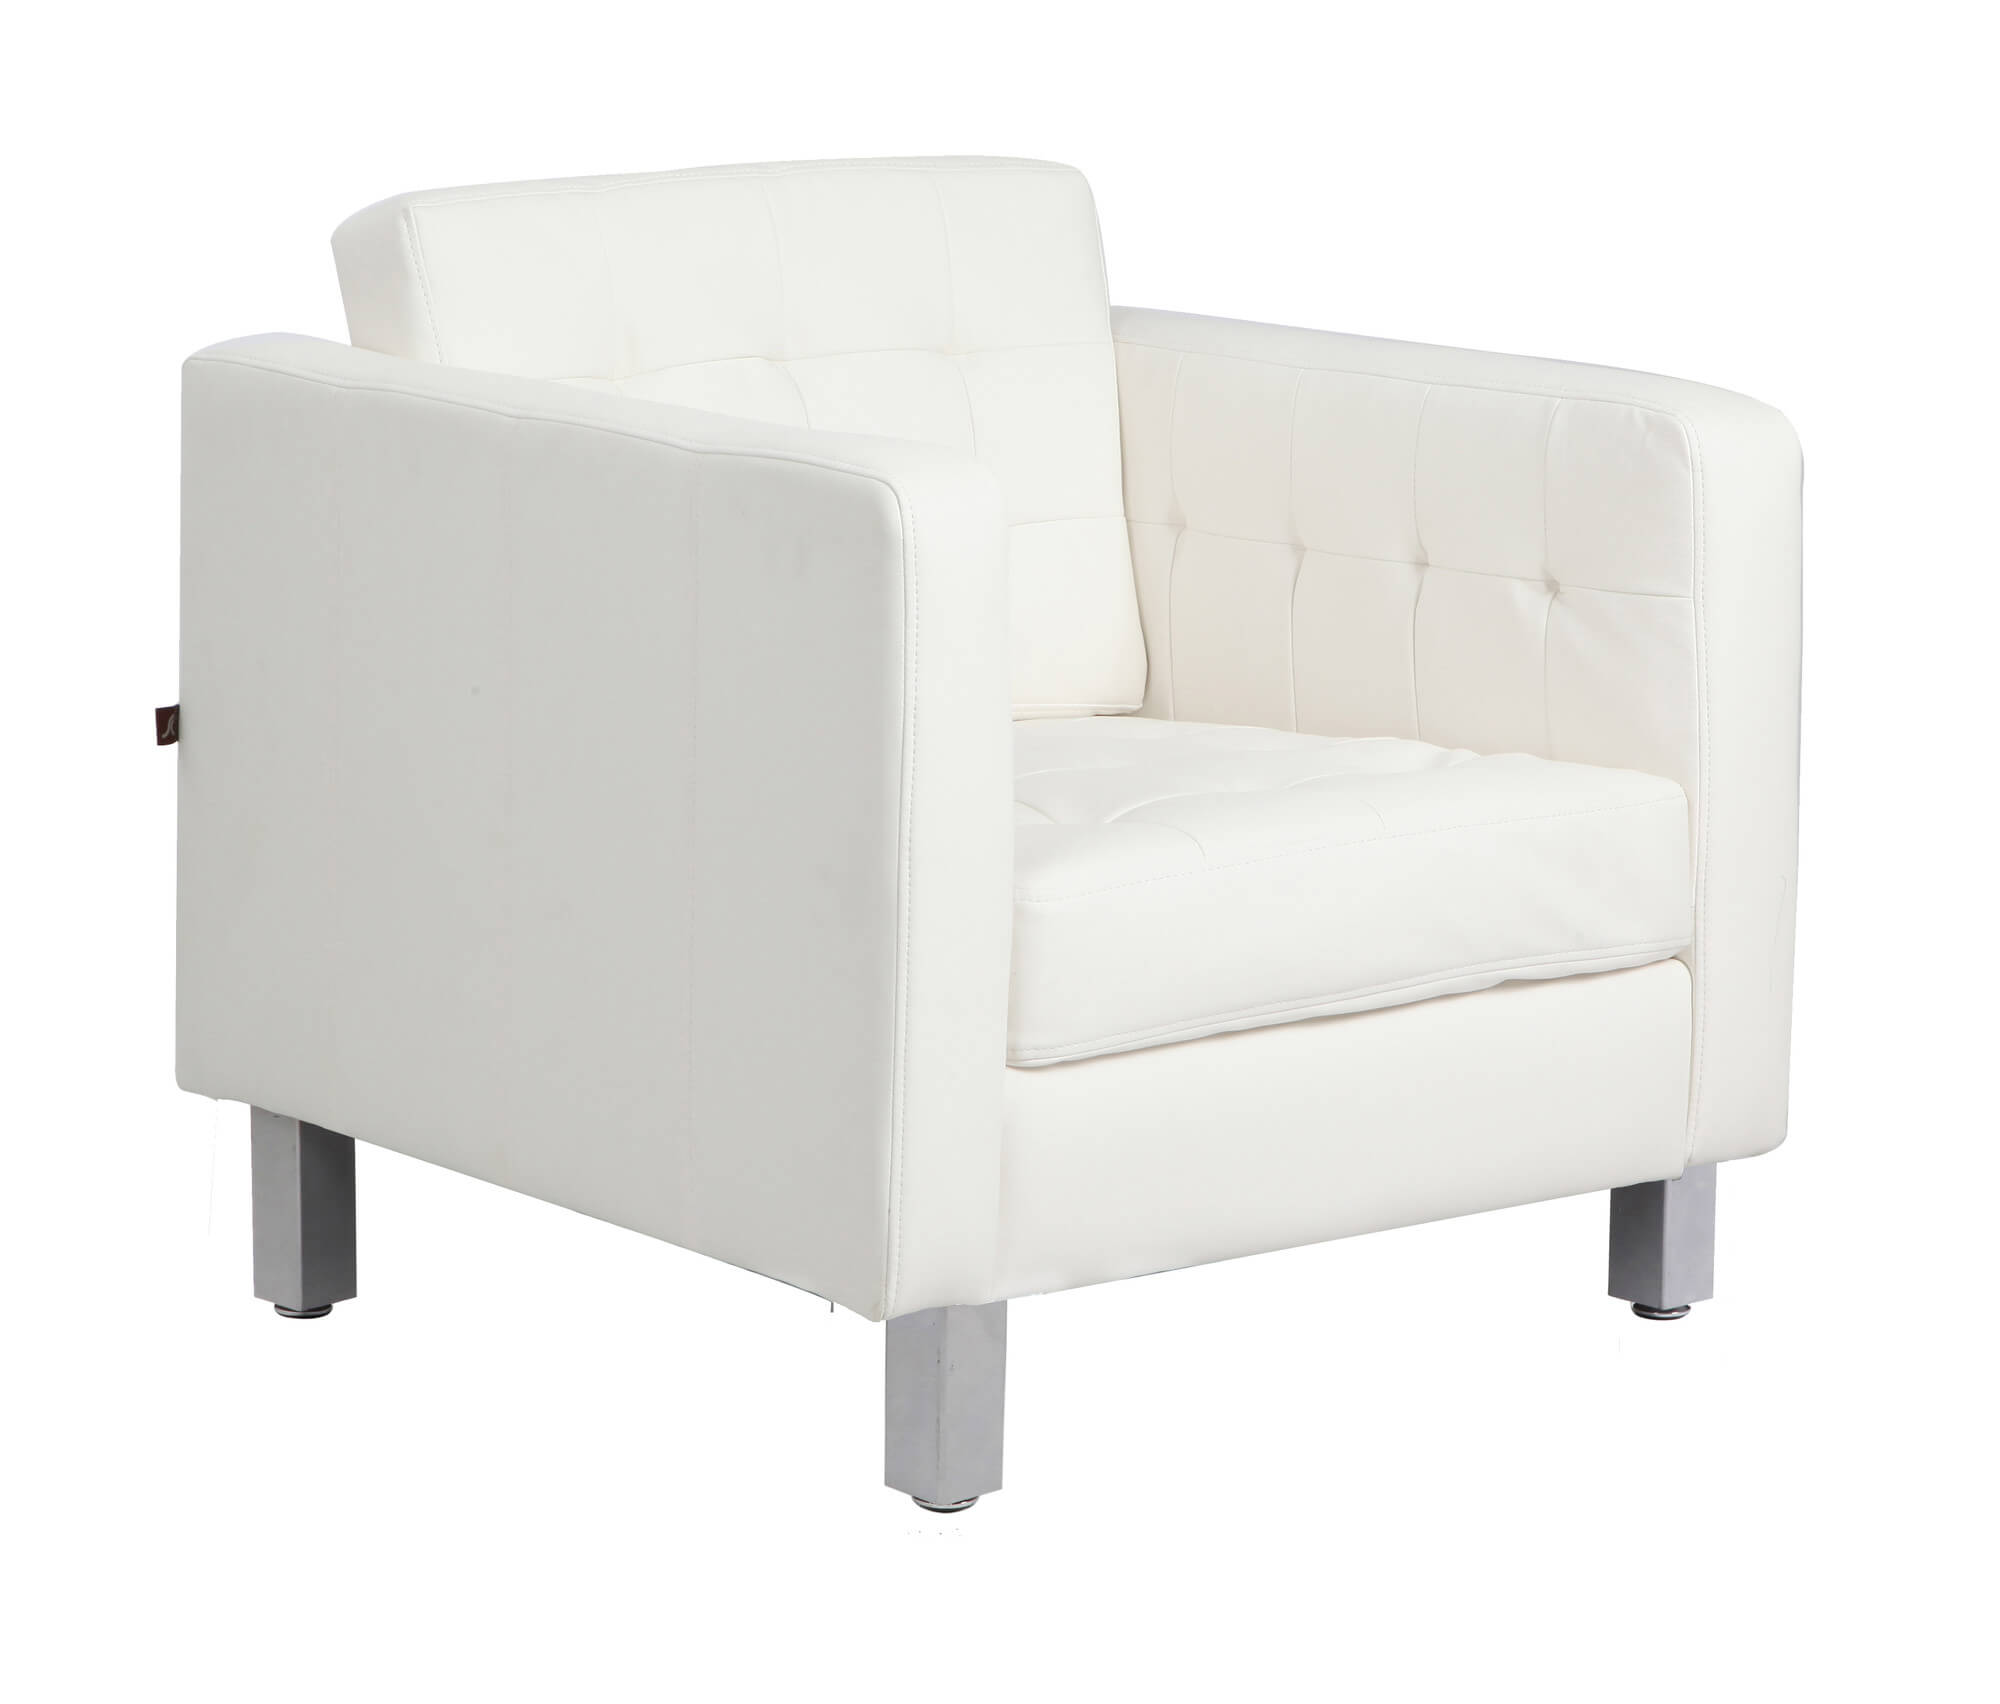 Here's another club chair, from Rissanti is upholstered in bonded leather, with spring seat cushion support and contemporary straight lined frame around cushion seating for modern touch.